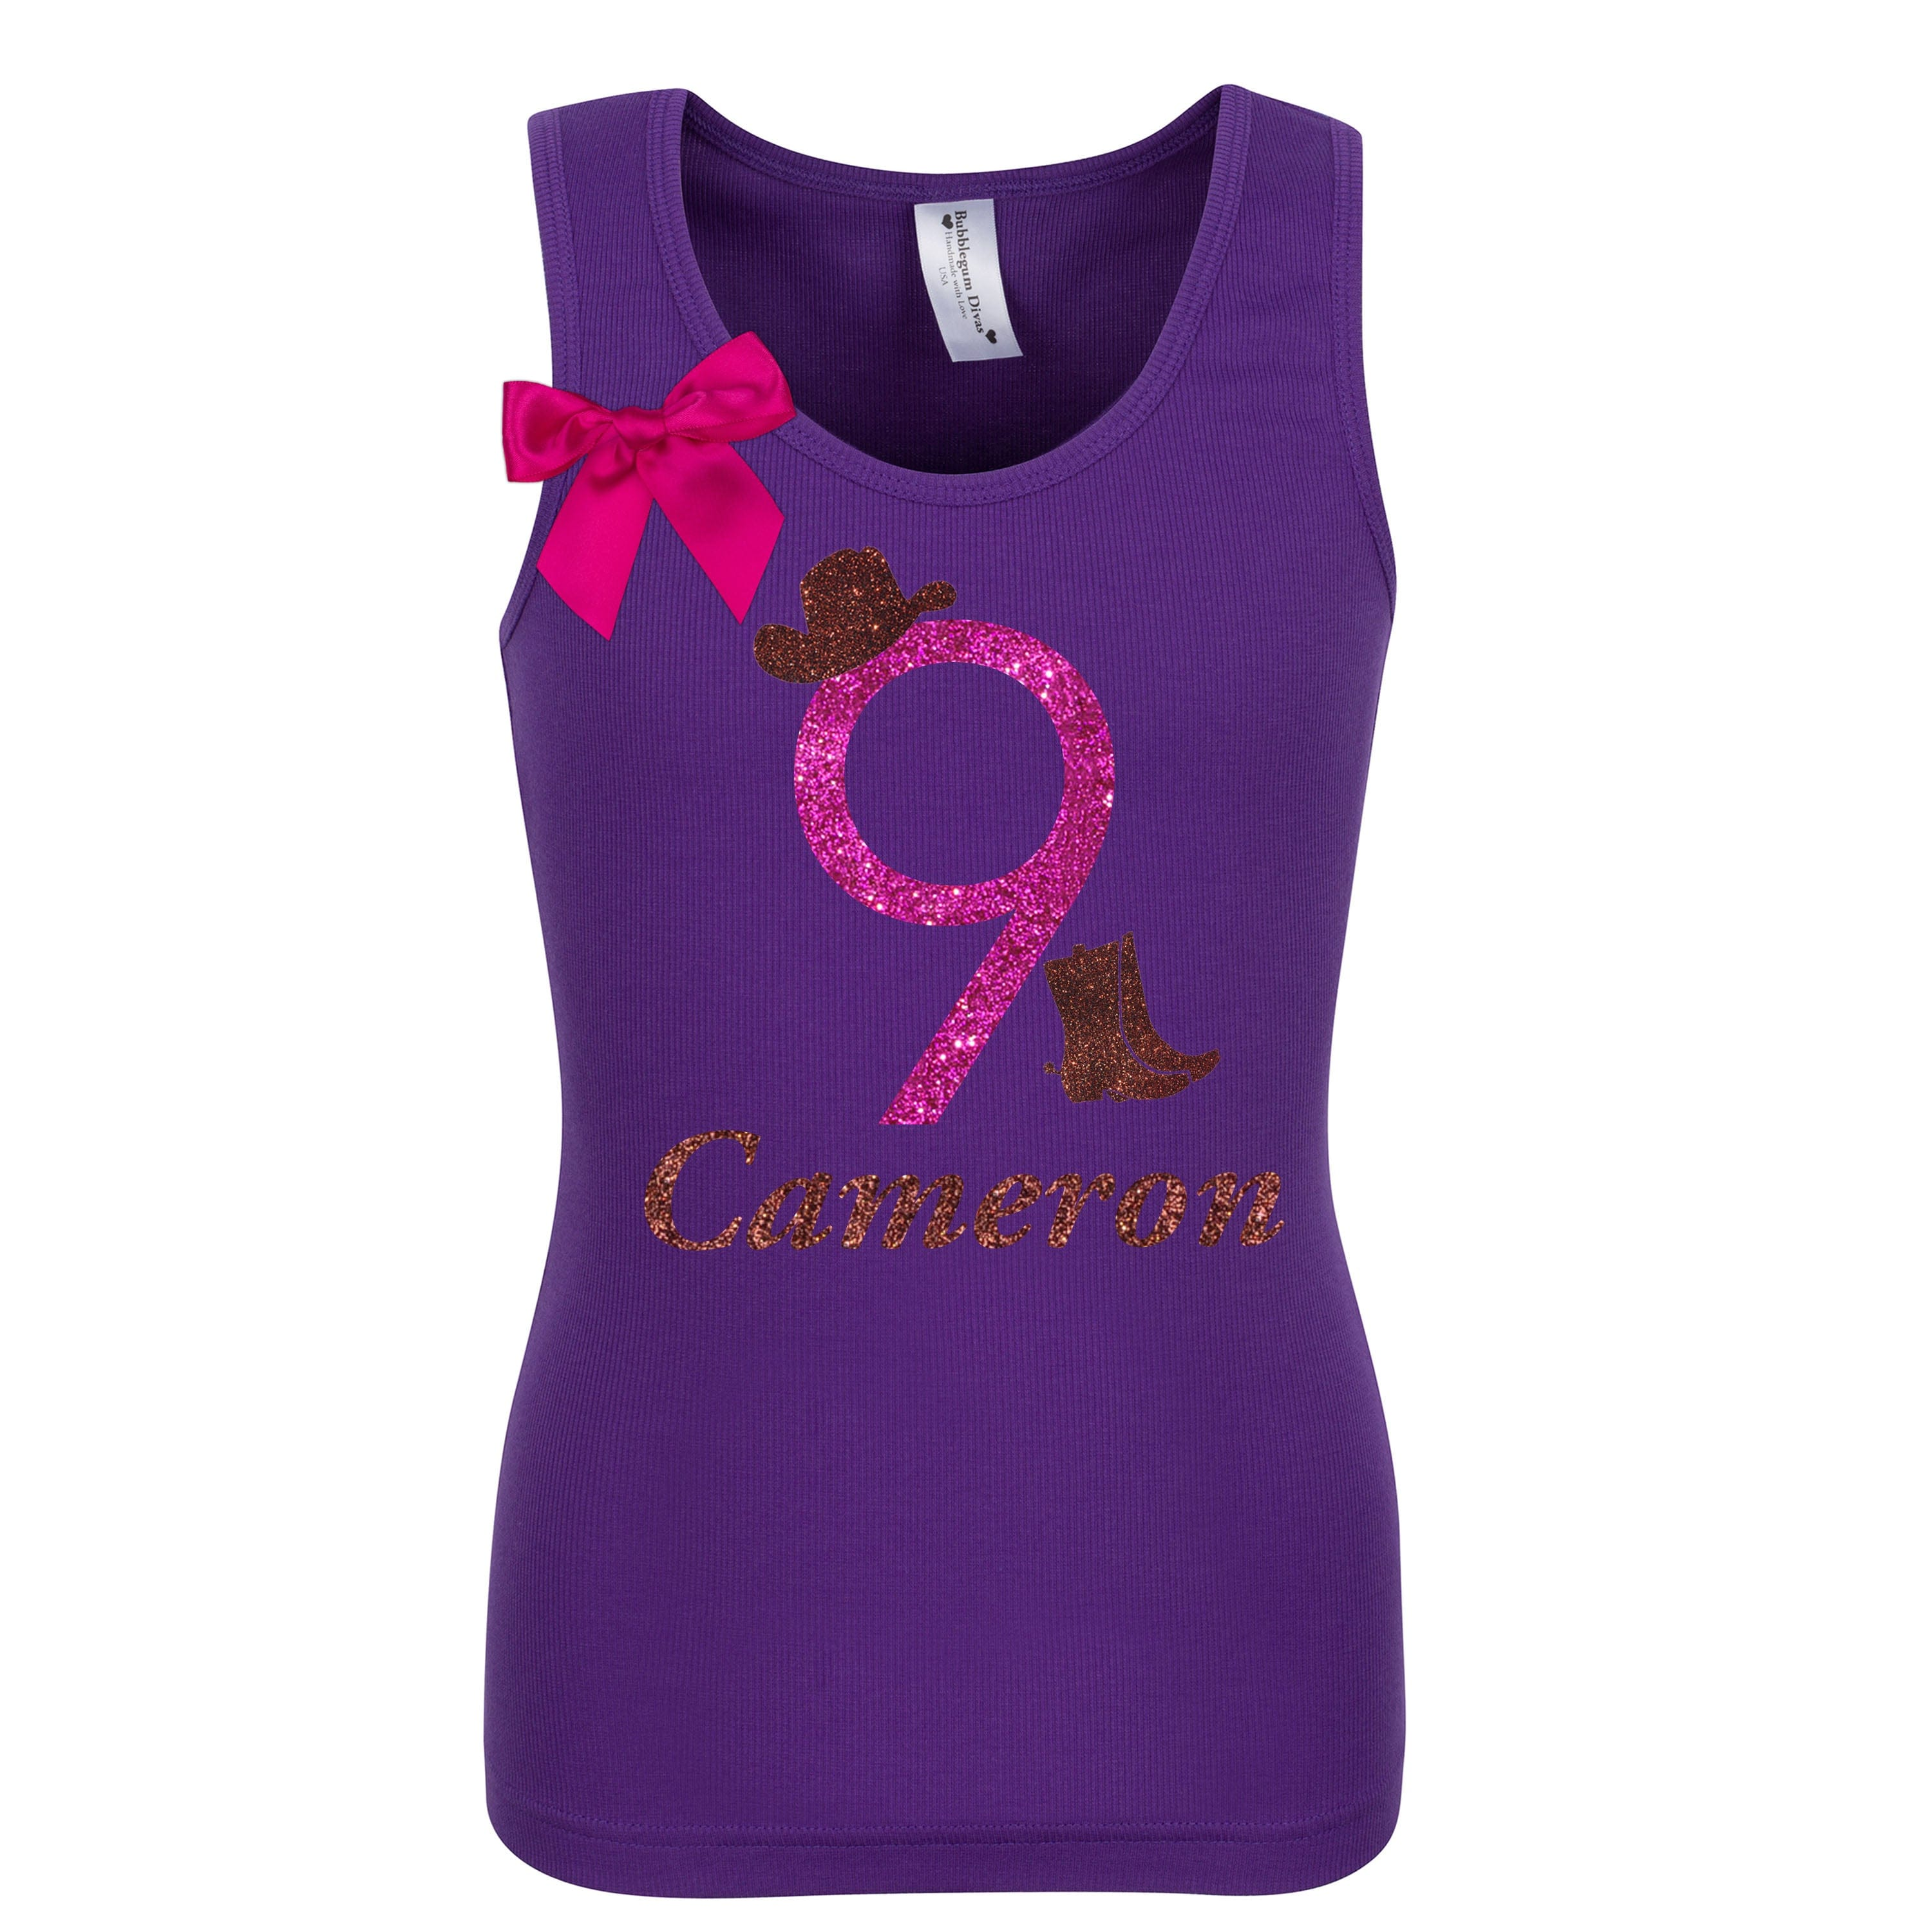 9th Birthday Girl Cowgirl Shirt Personalized Name Age 9